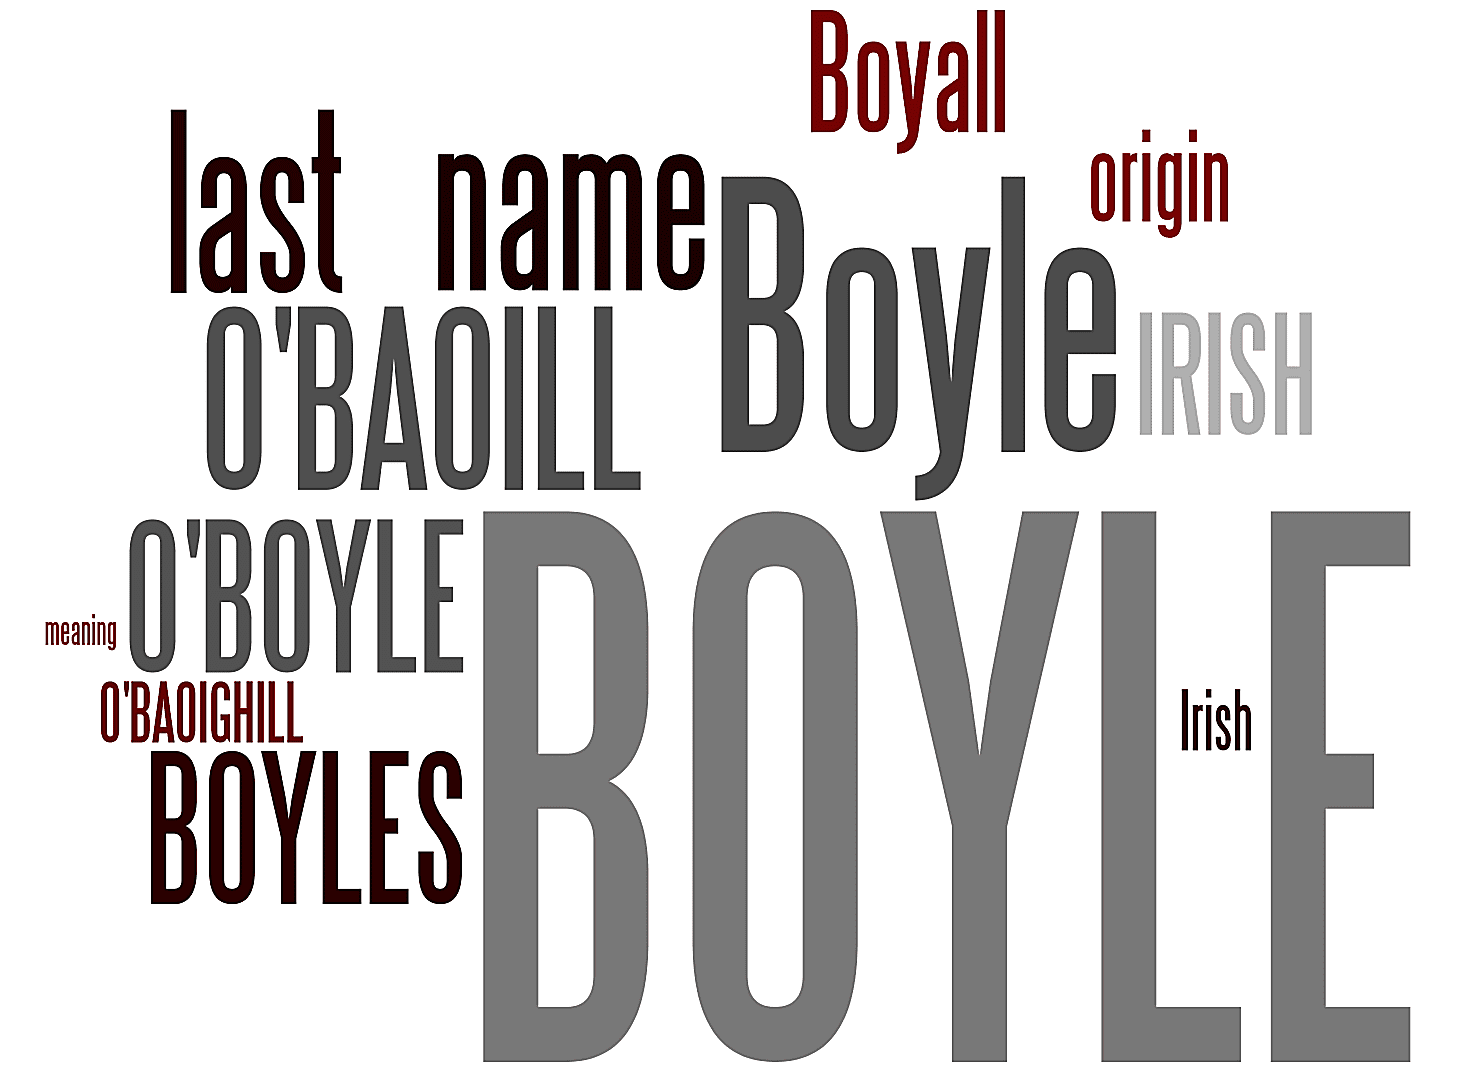 Ethnic background of last names - Where The Boyle Last Name Originated And What It Means